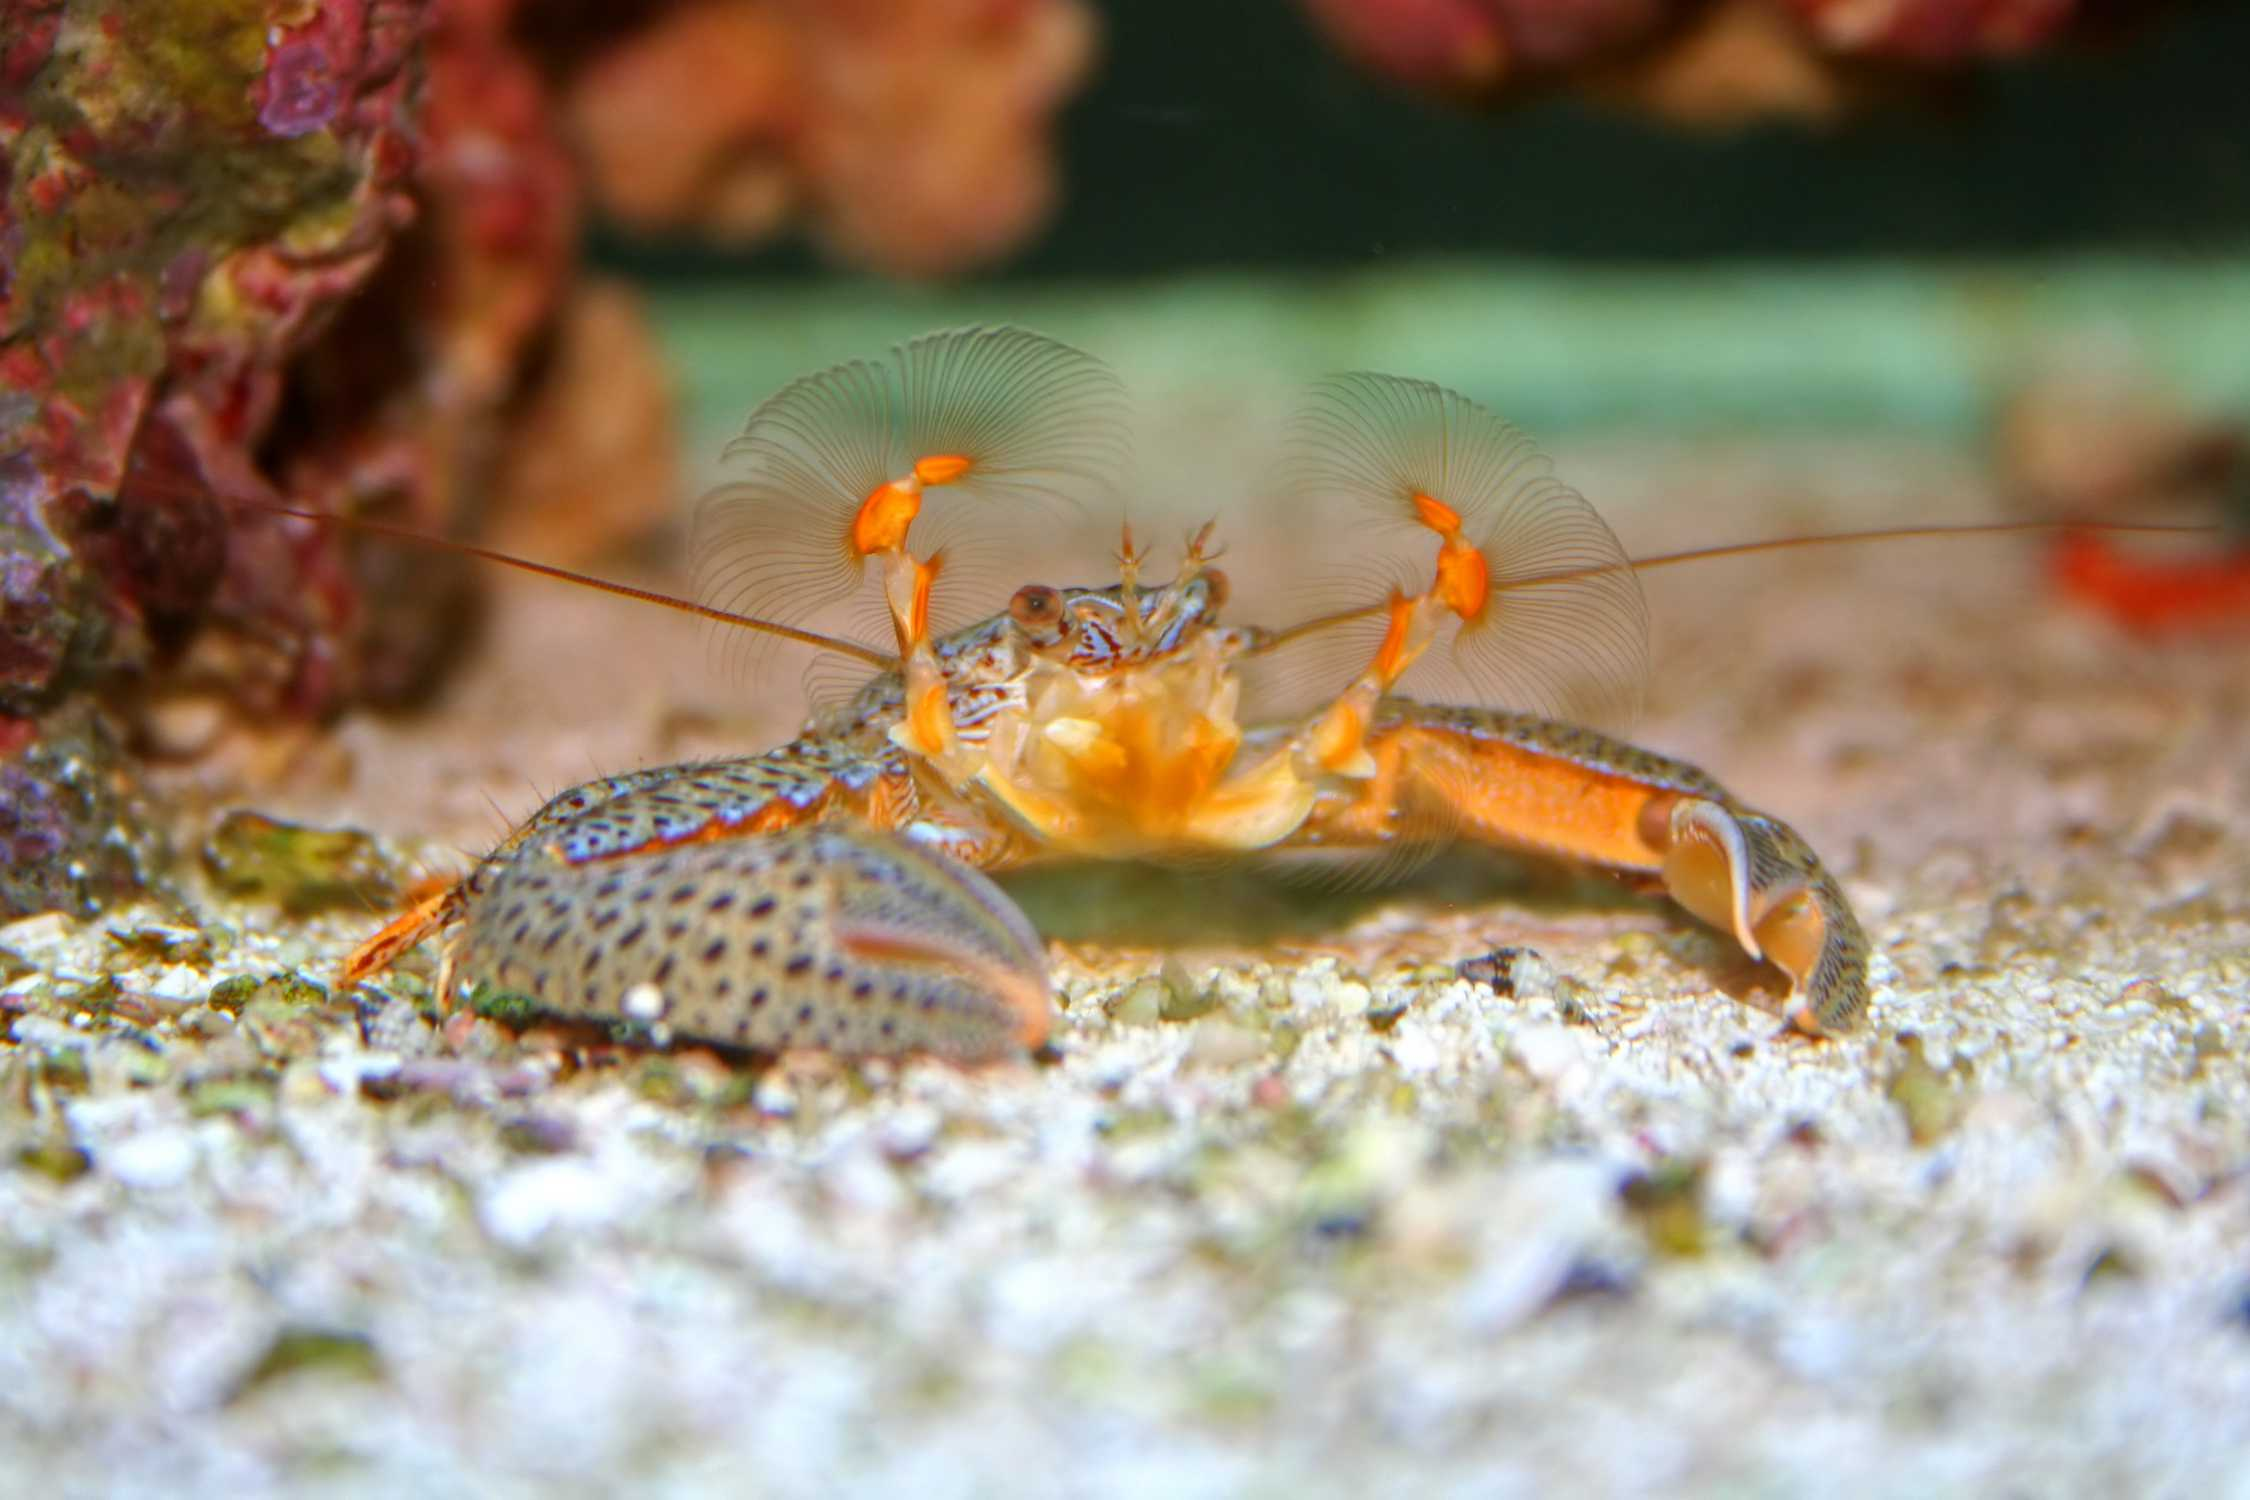 Arthropod Pictures Hexapods Myriapods And More